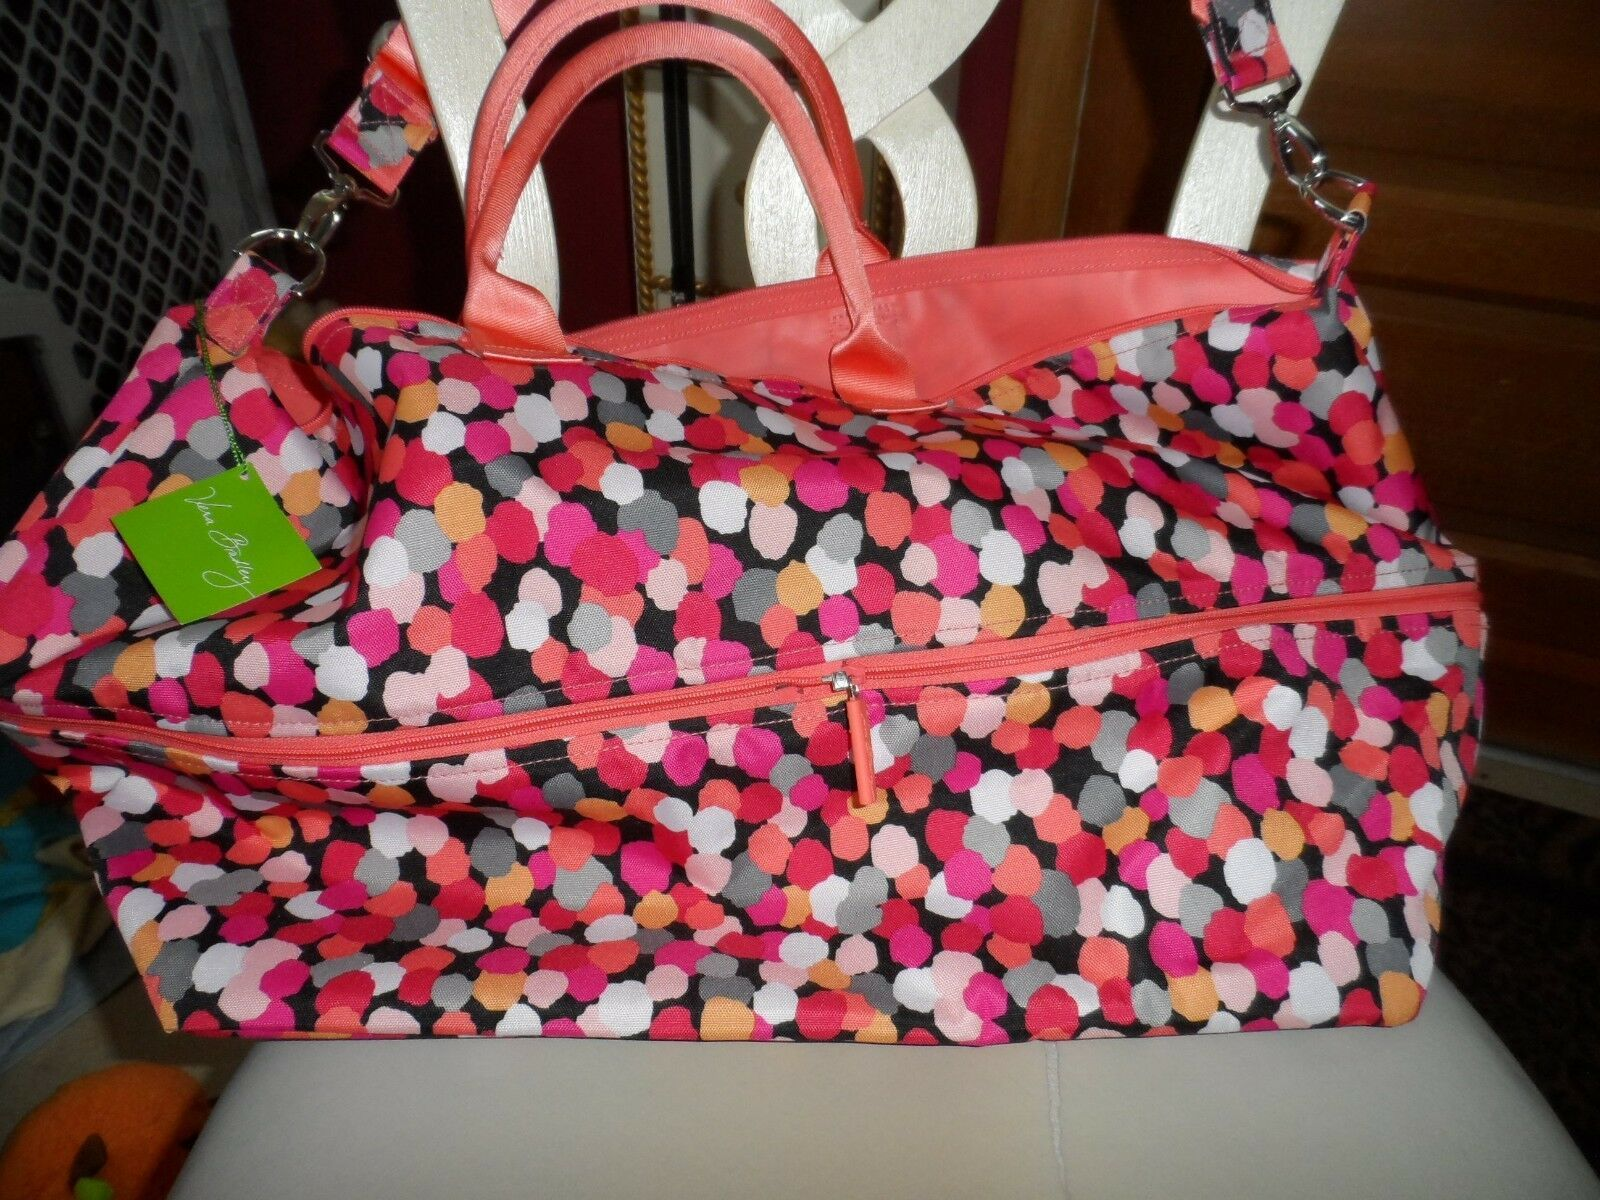 Vera Bradley Lighten up Expandable travel Bag in Pixie Confetti